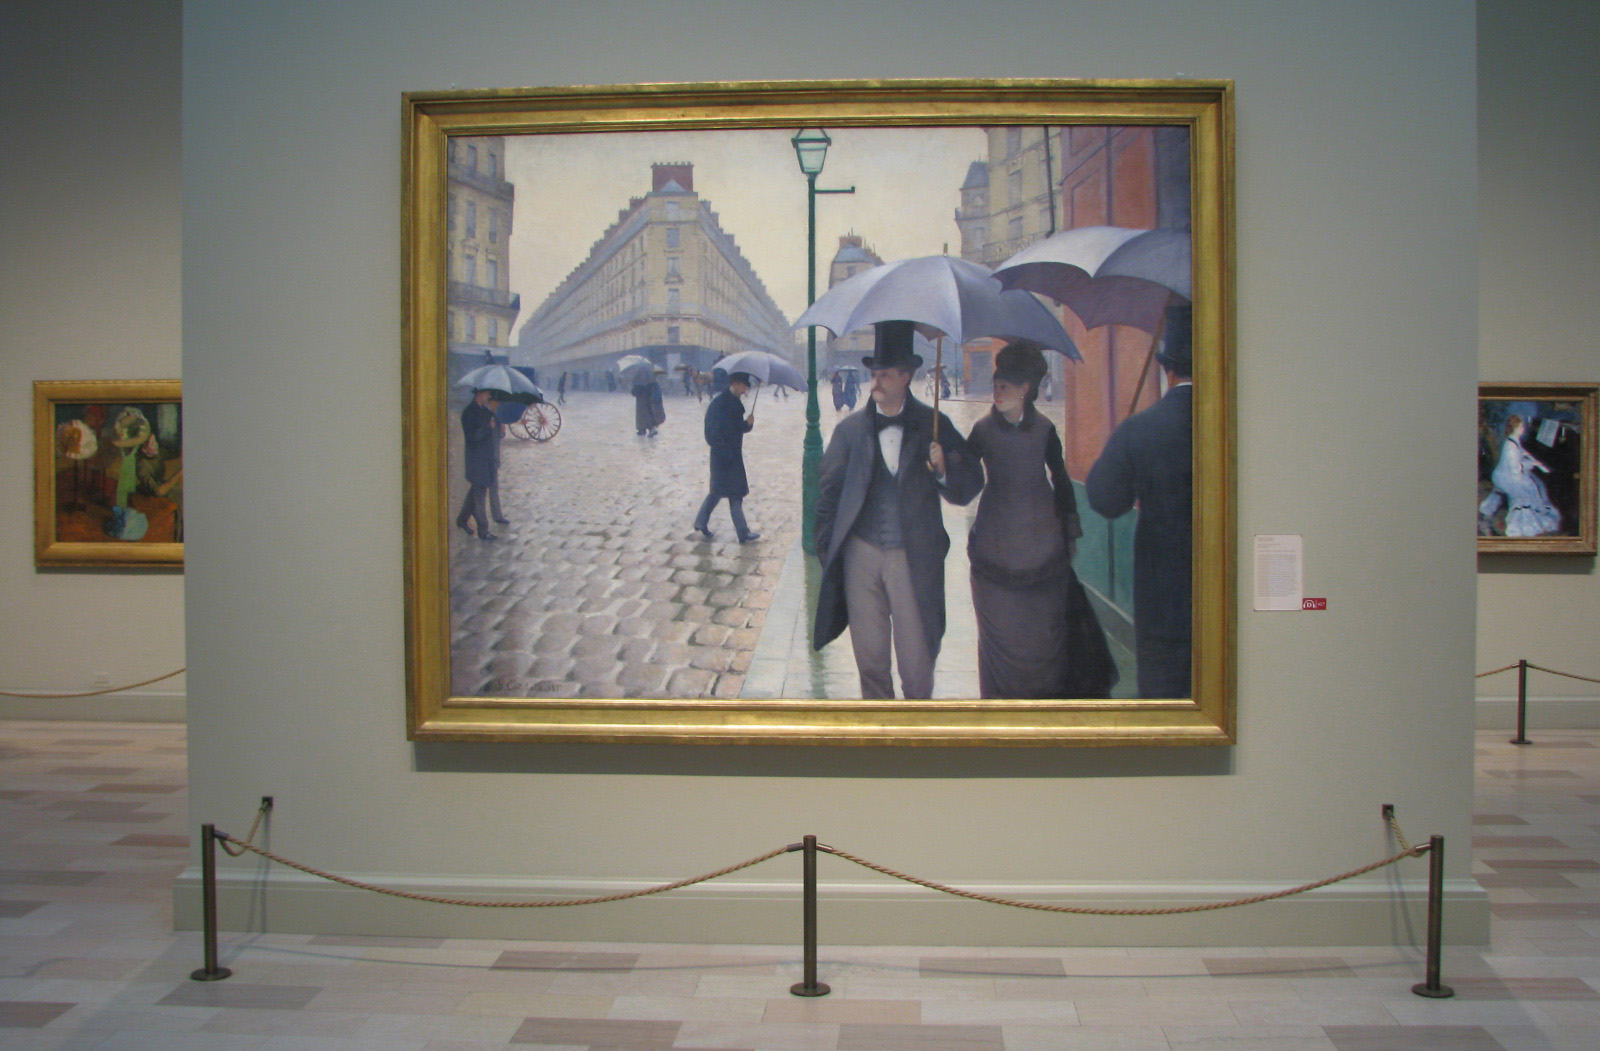 paris a rainy day essay Gustave caillebotte was the first impressionist that painted realistic, photo paintings caillebotte was born in 1848, he was a french painter that was really influenced by impressionism mostly all of caillebotte's work was, oil on canvas style he painted paris street rainy day in 1877.